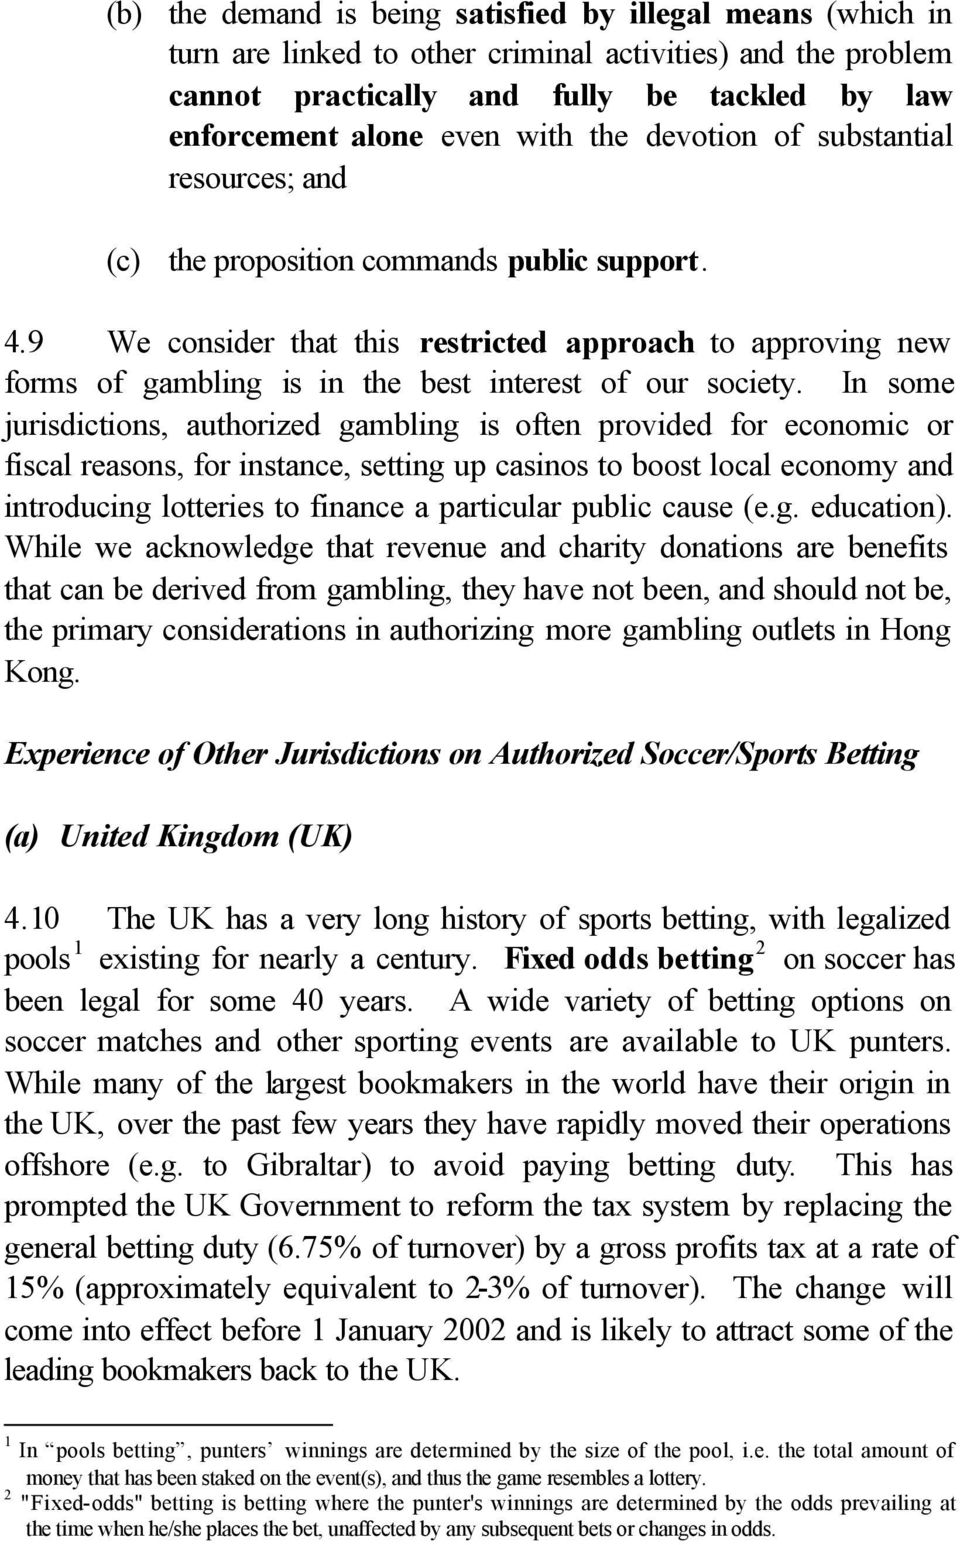 9 We consider that this restricted approach to approving new forms of gambling is in the best interest of our society.